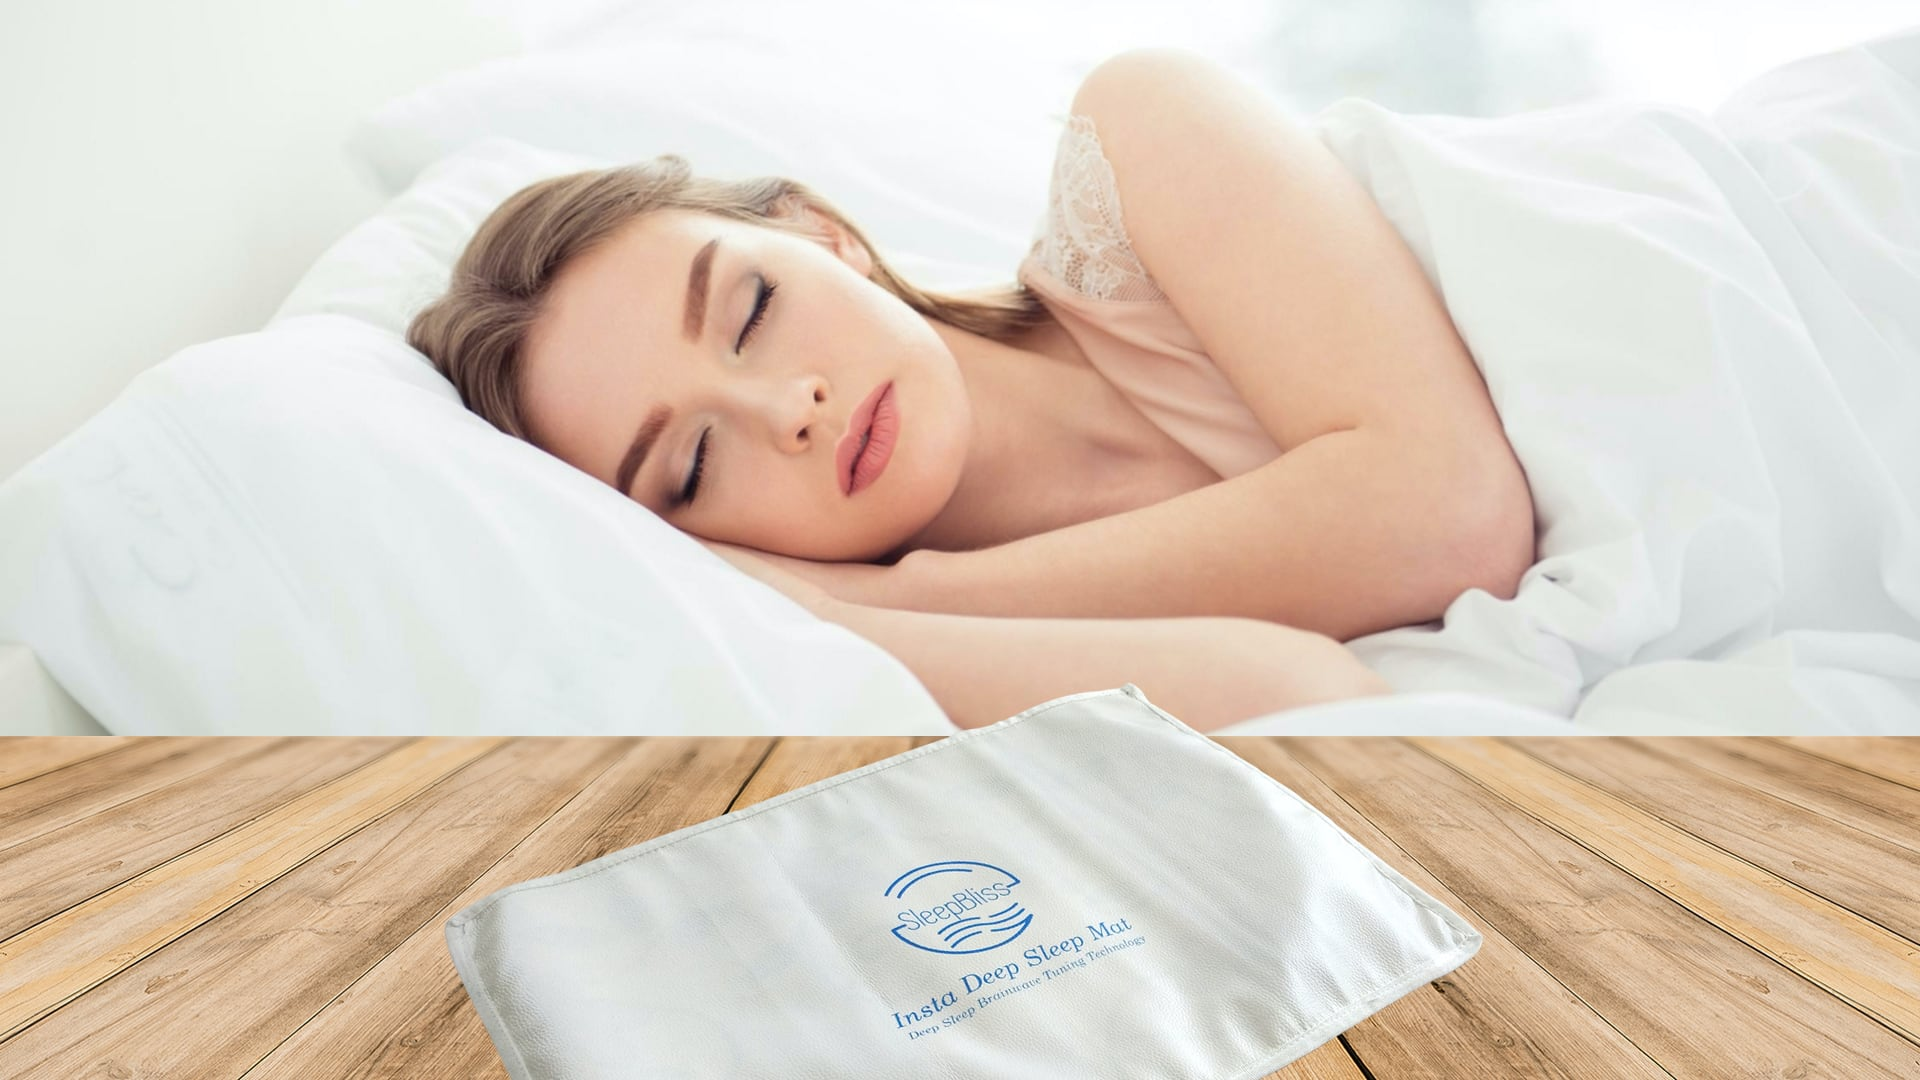 SleepBliss enhances your quality of sleep to provide natural & healthy deep sleep